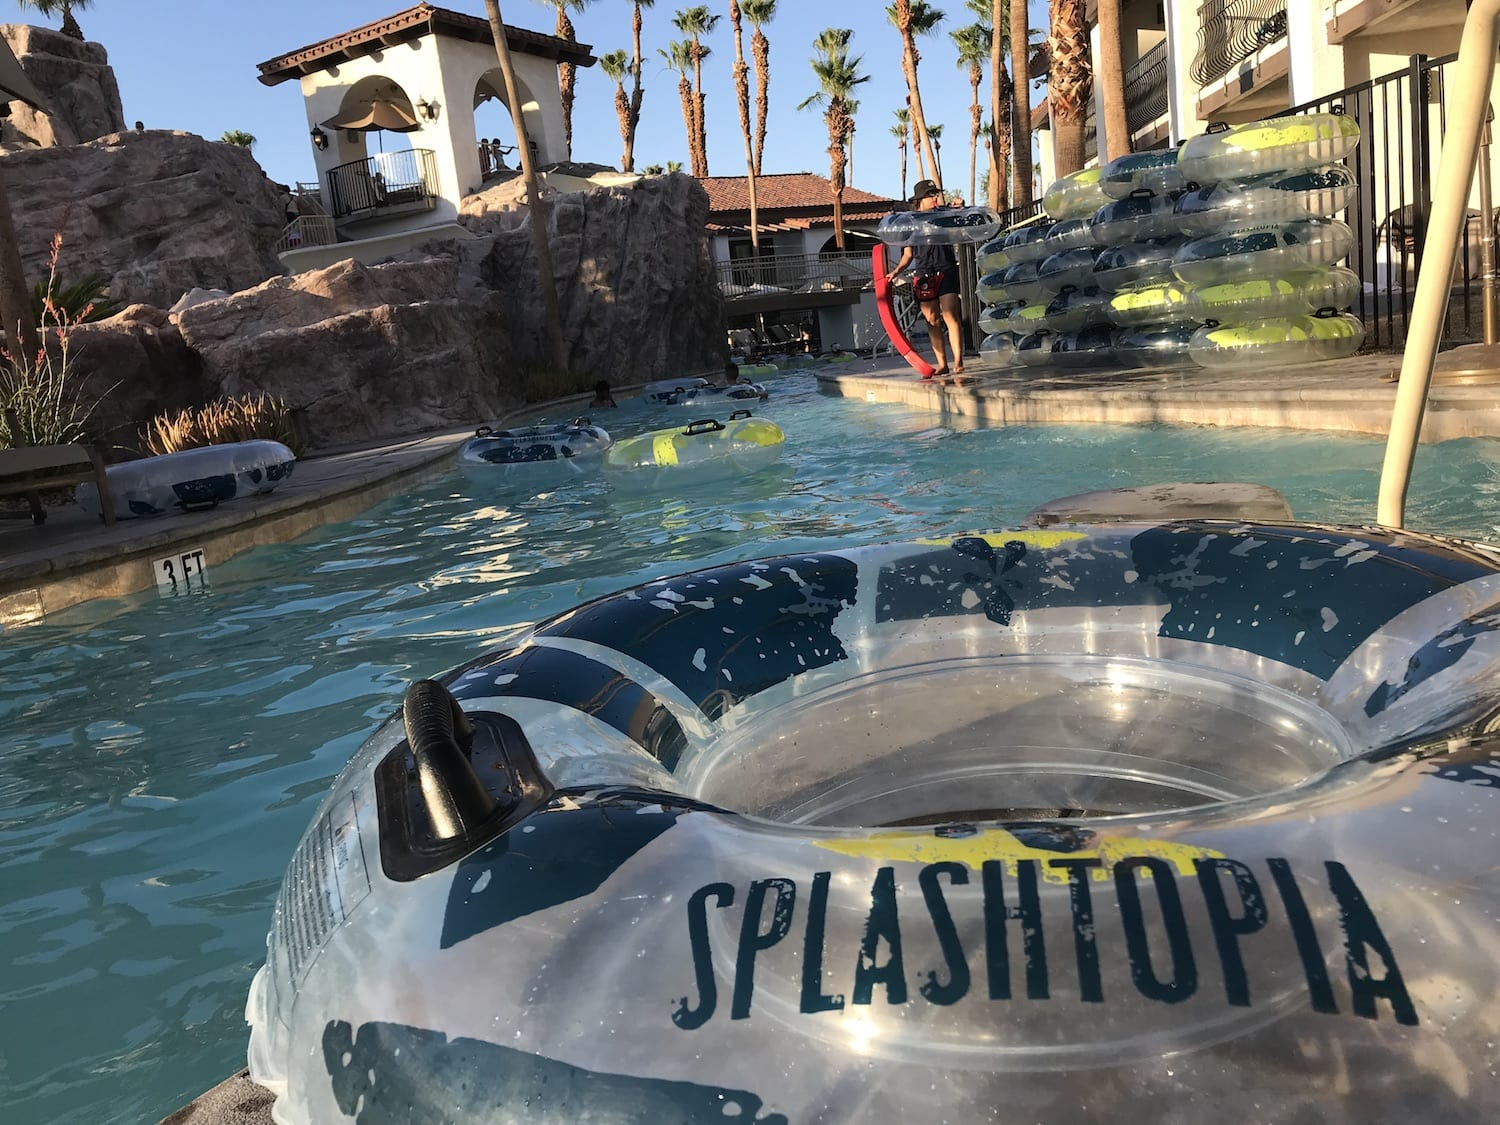 Splashtopia at the Omni Resort